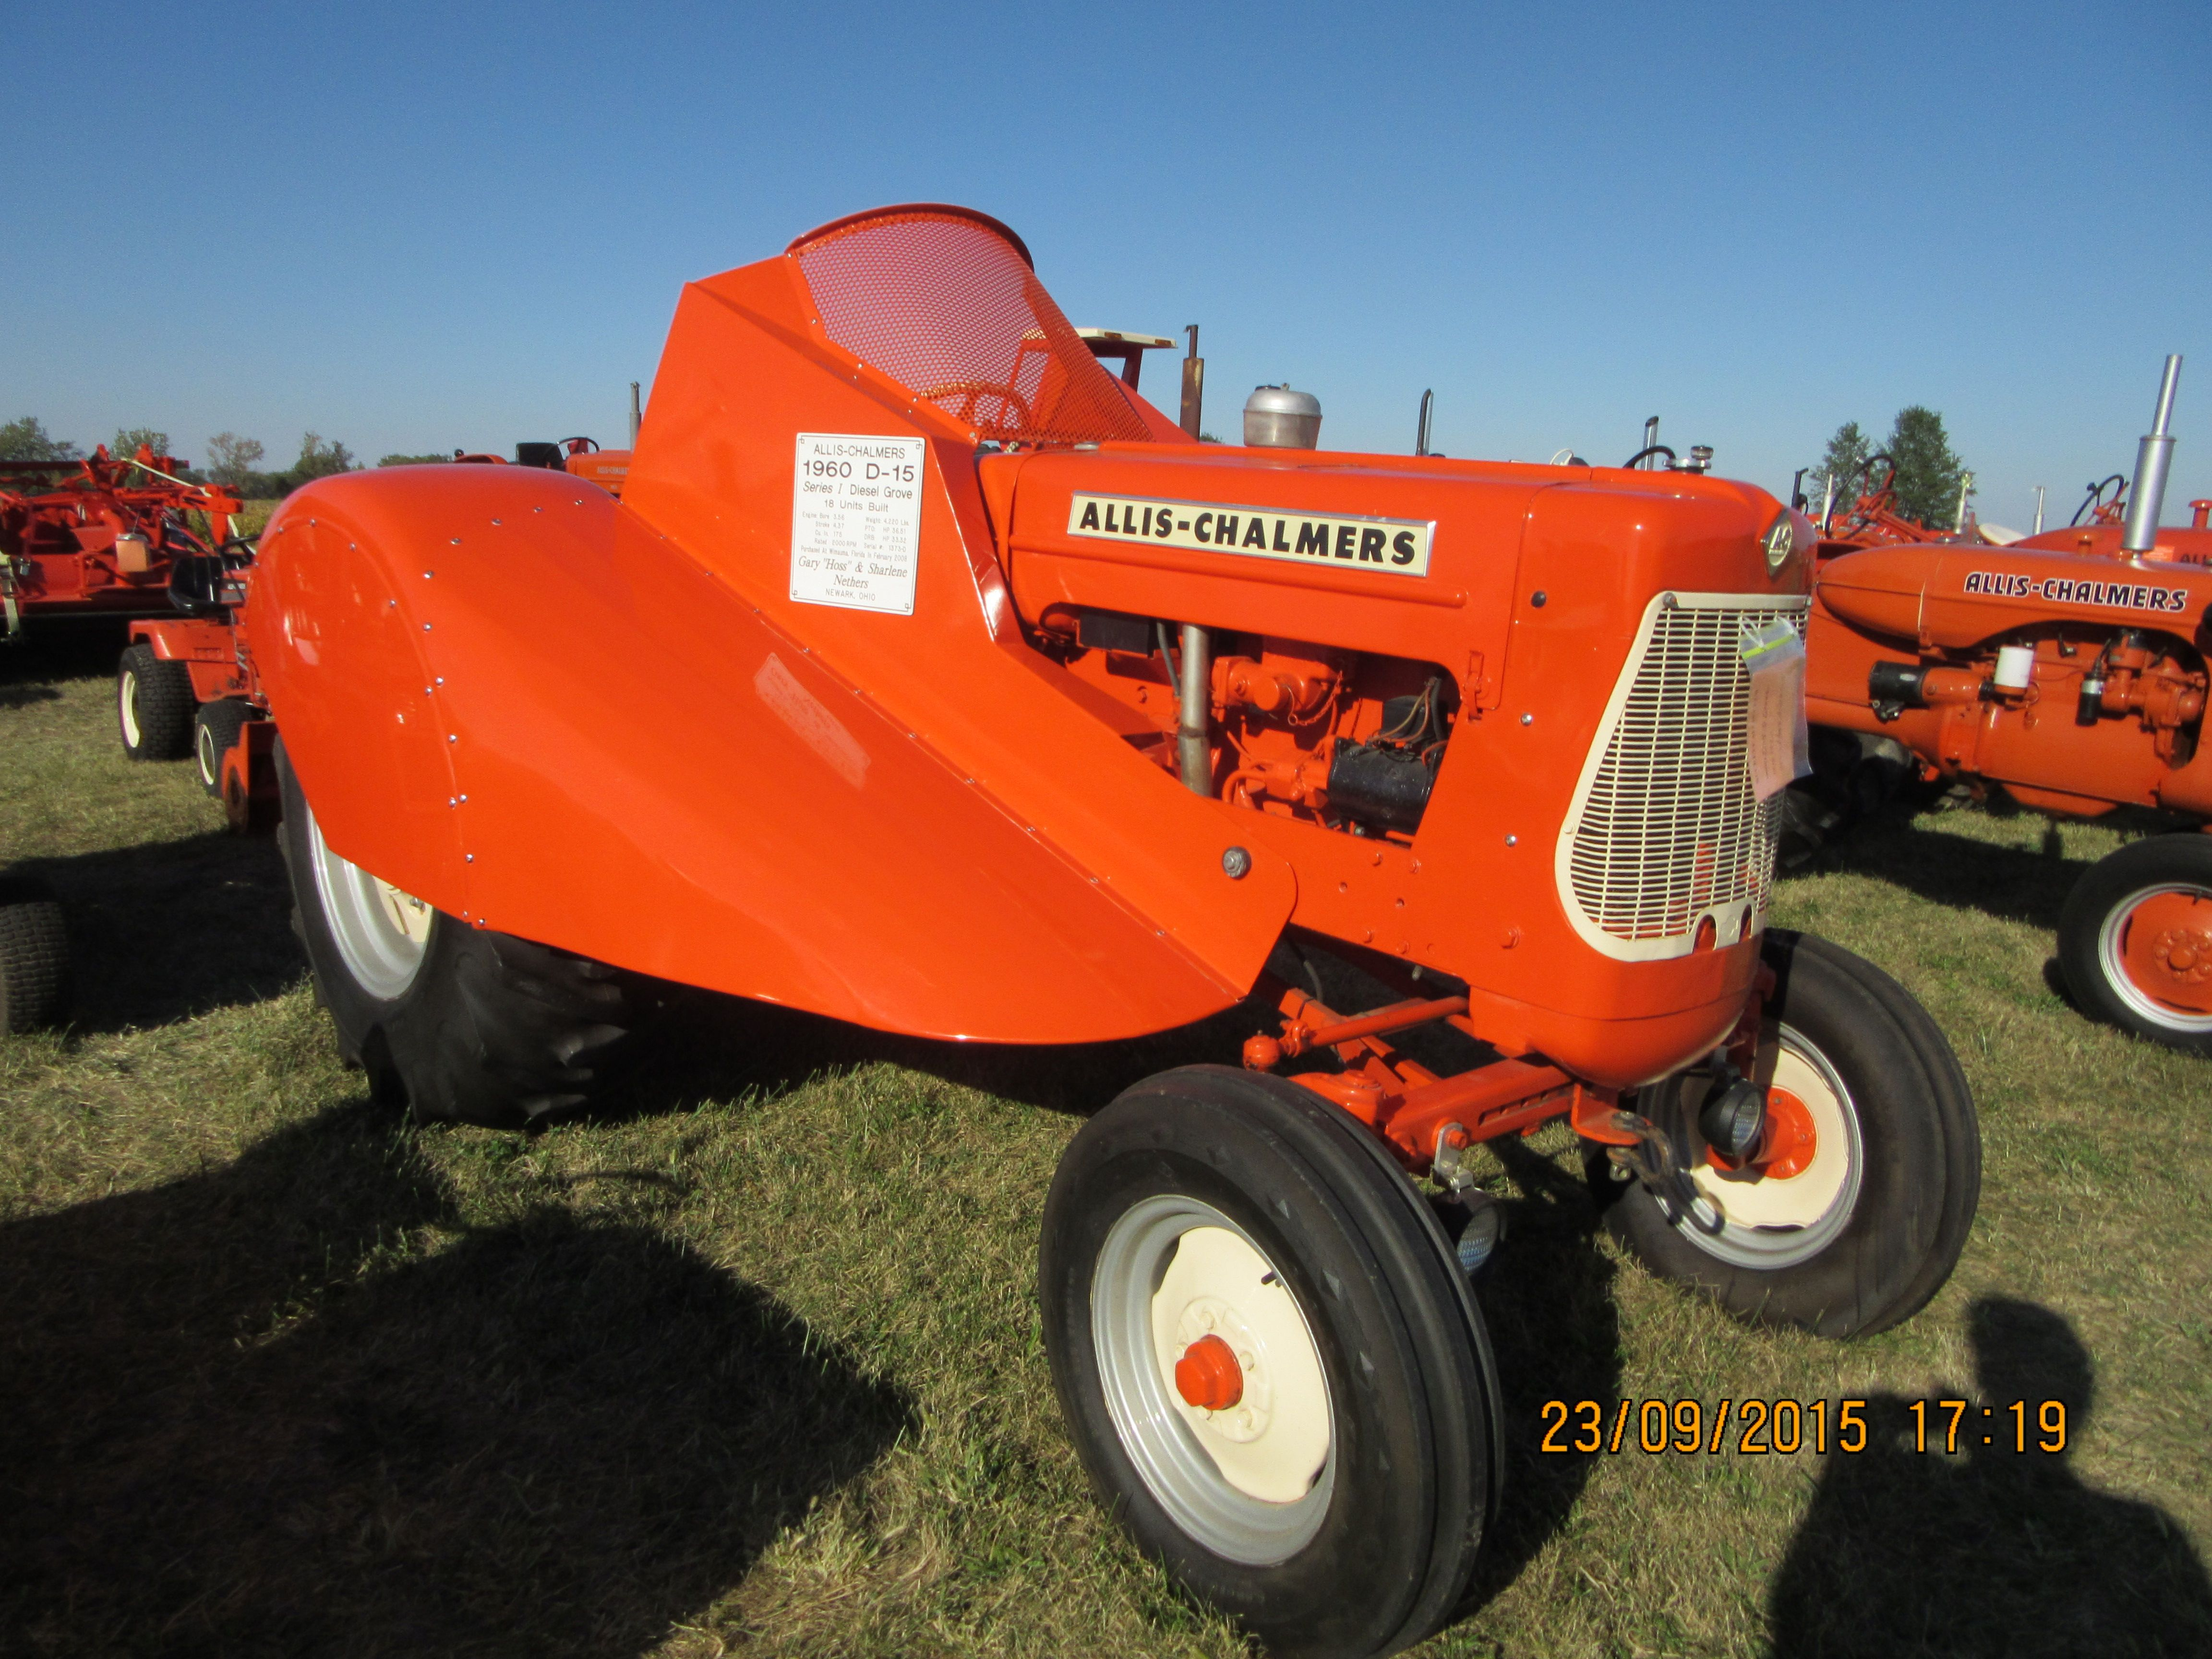 Ford Orchard Tractor : Rare allis chalmers d orchard tractor